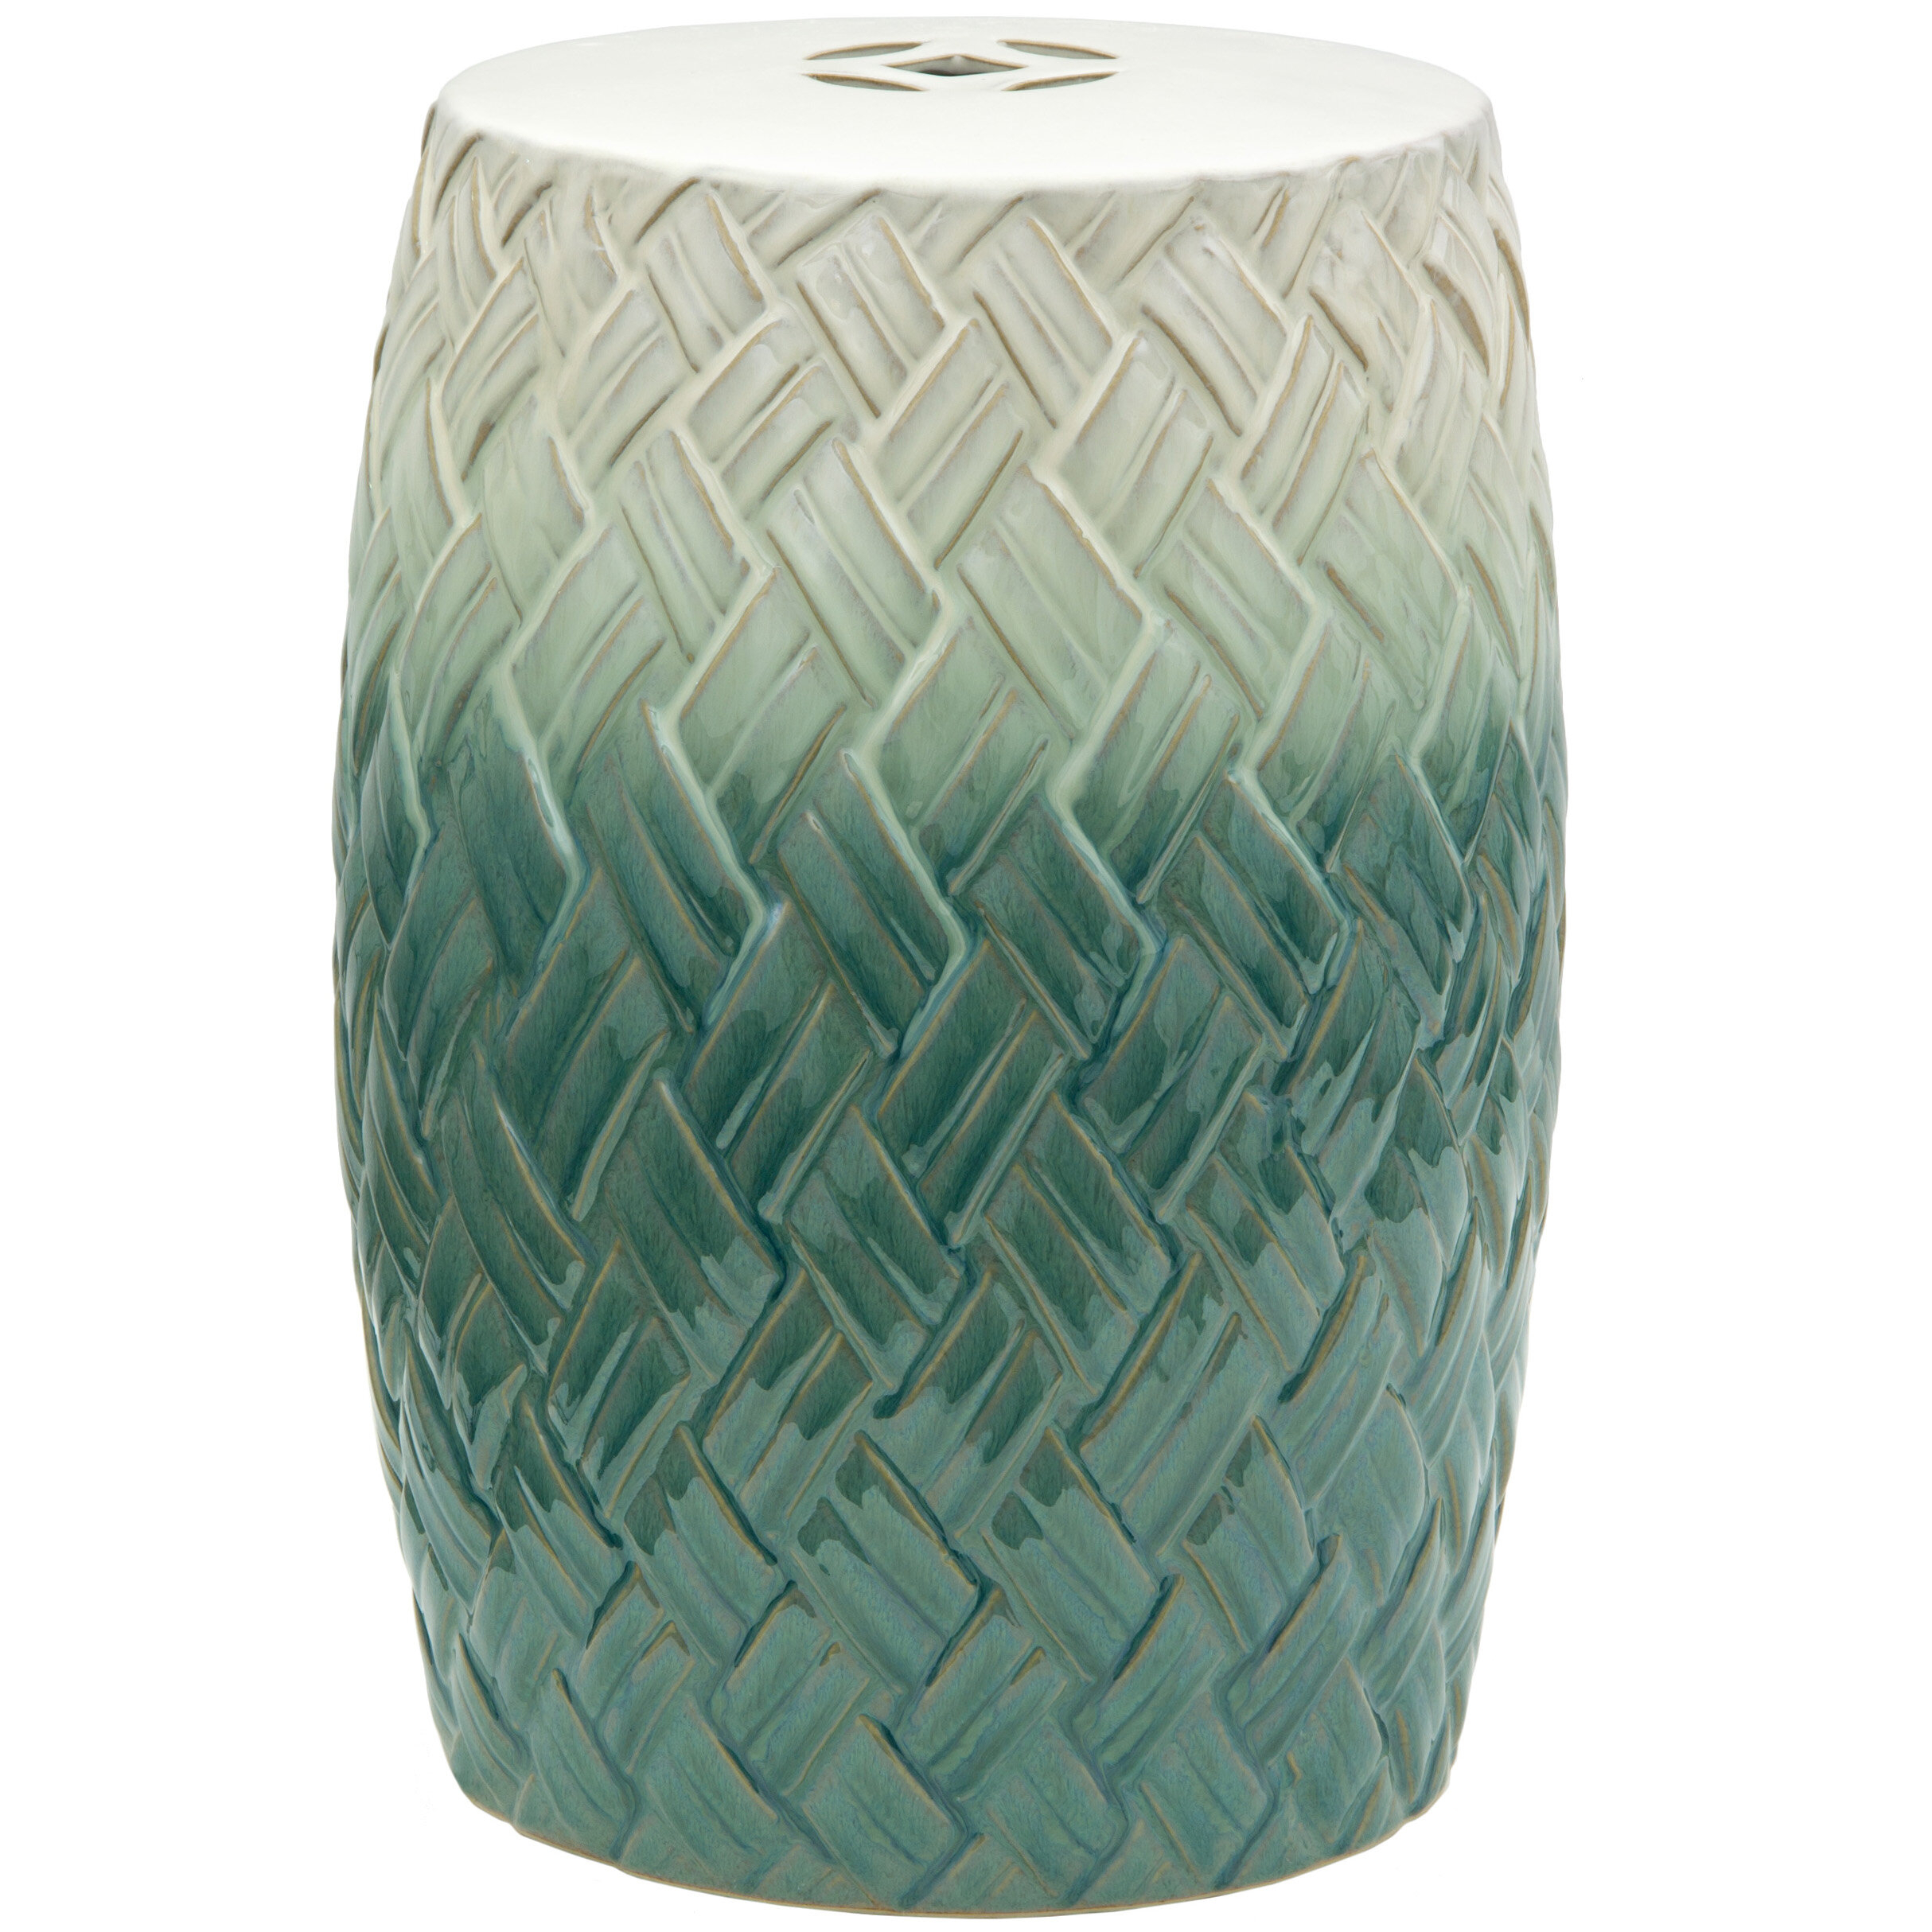 Sobieski Woven Design Porcelain Garden Stool For Horsforth Garden Stools (View 5 of 25)